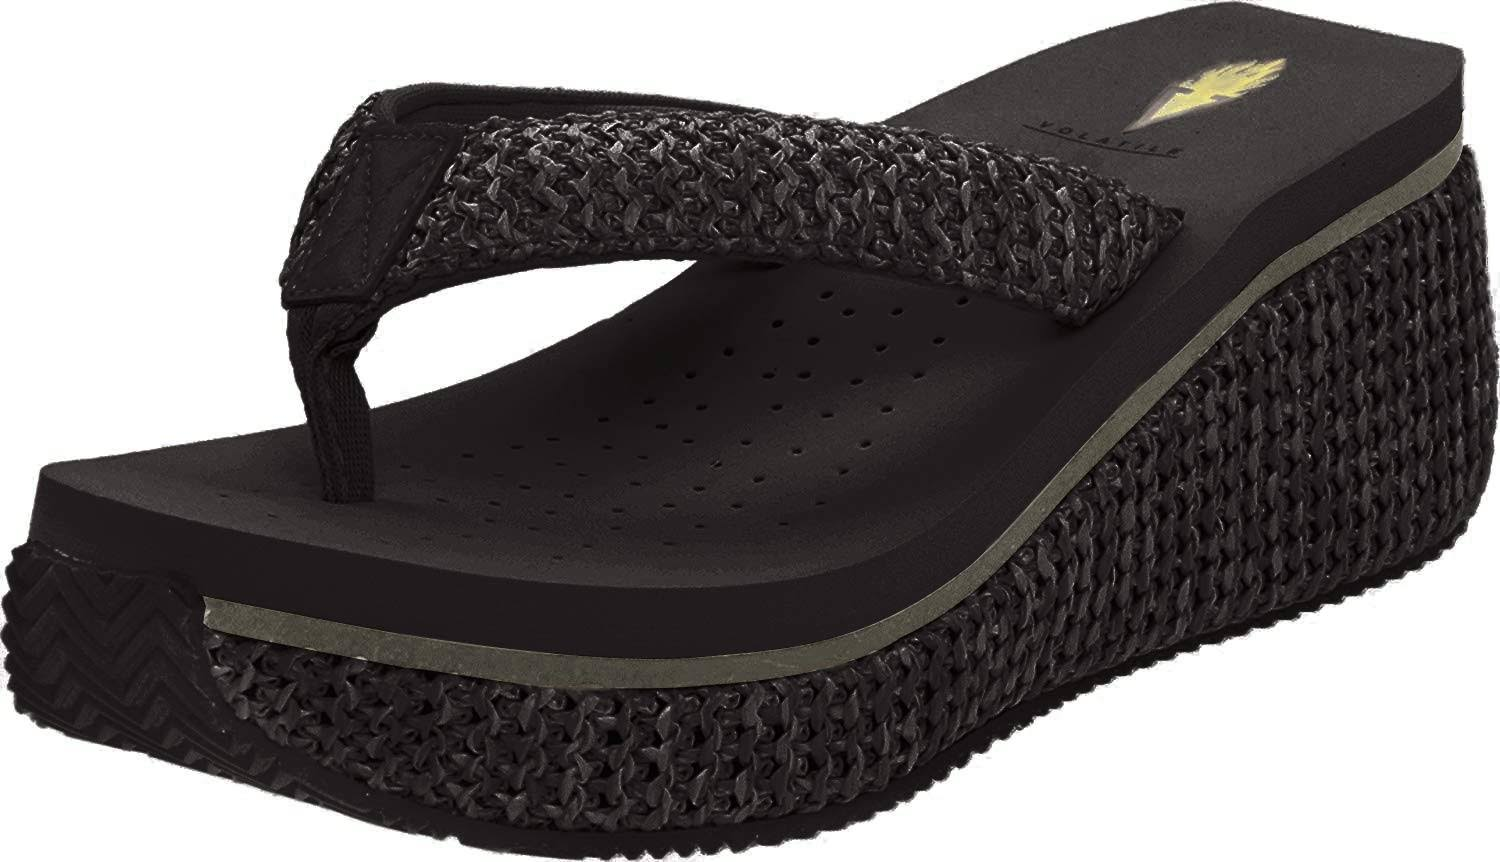 Volatile Women's Island Wedge Sandals - Black, 8 USW